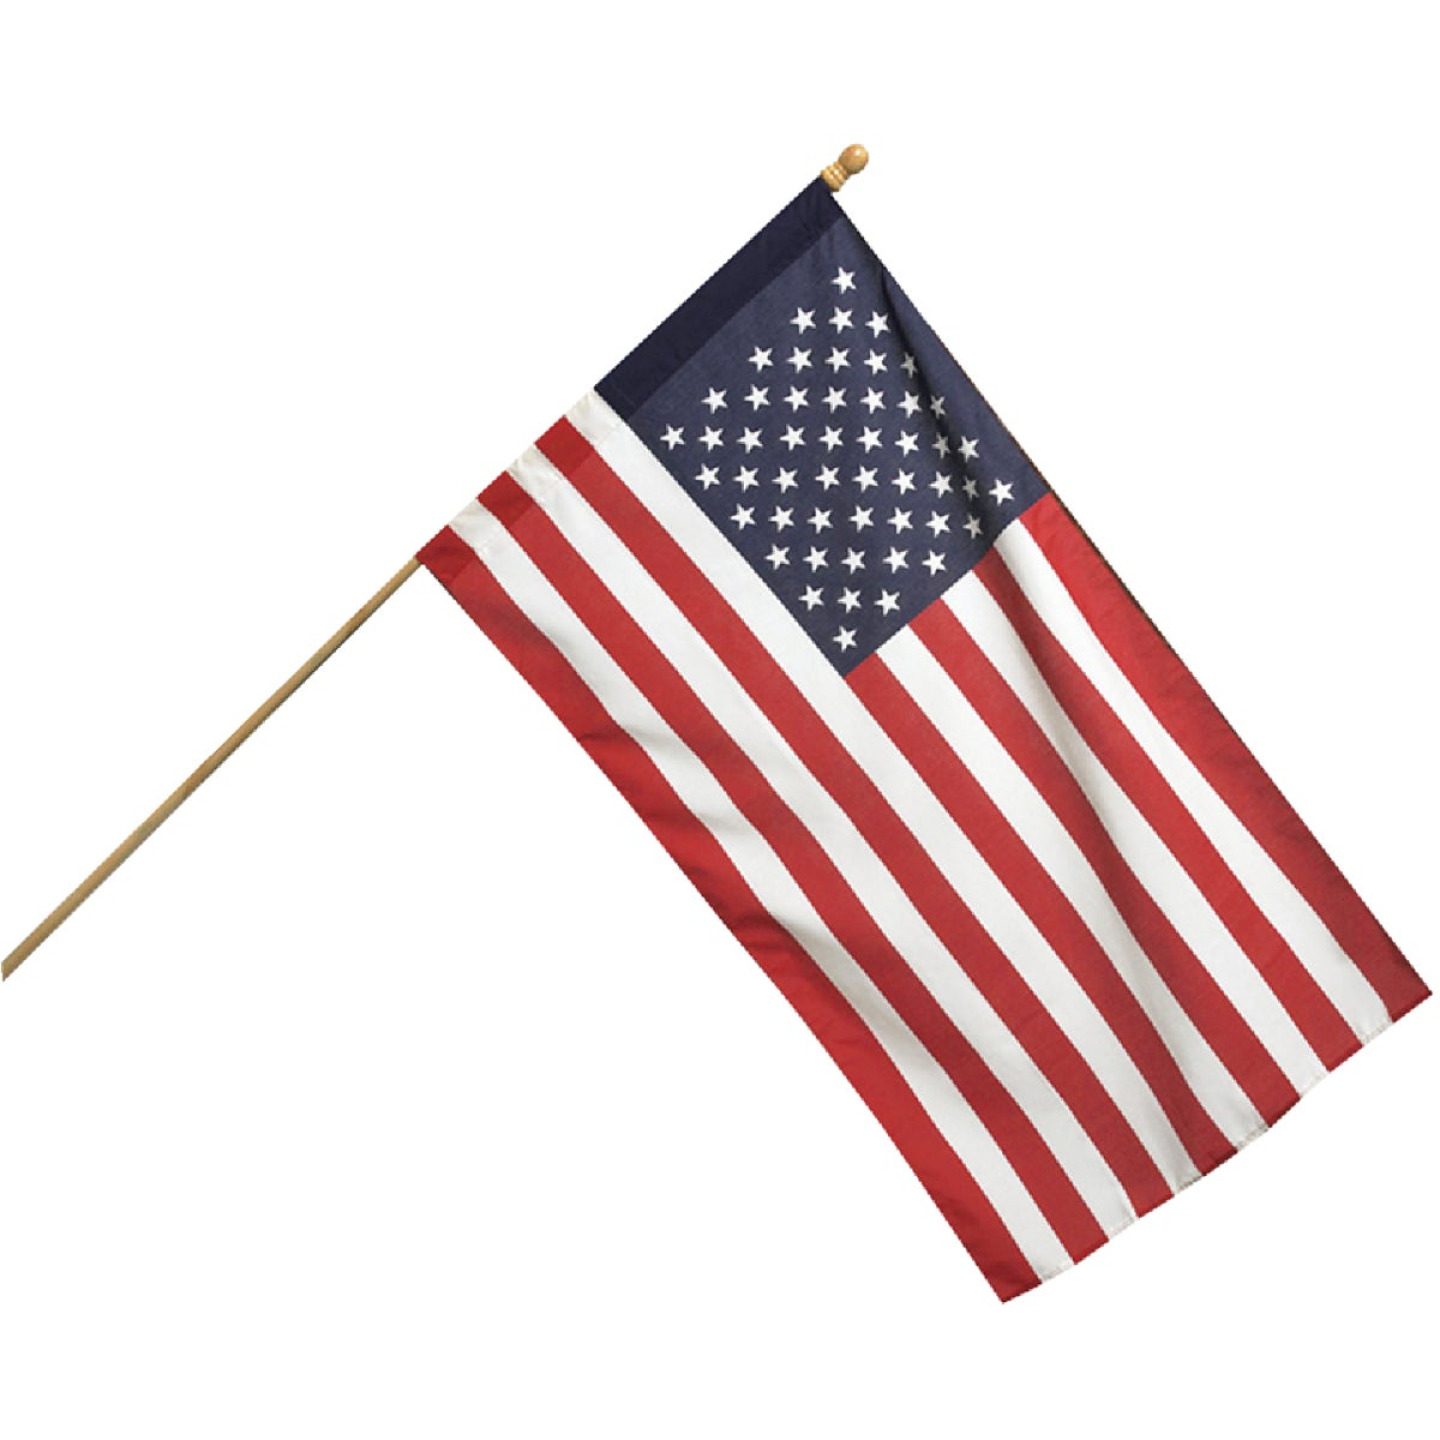 Valley Forge 2.5 Ft. x 4 Ft. Polycotton American Flag & 5 Ft. Pole Kit Image 1